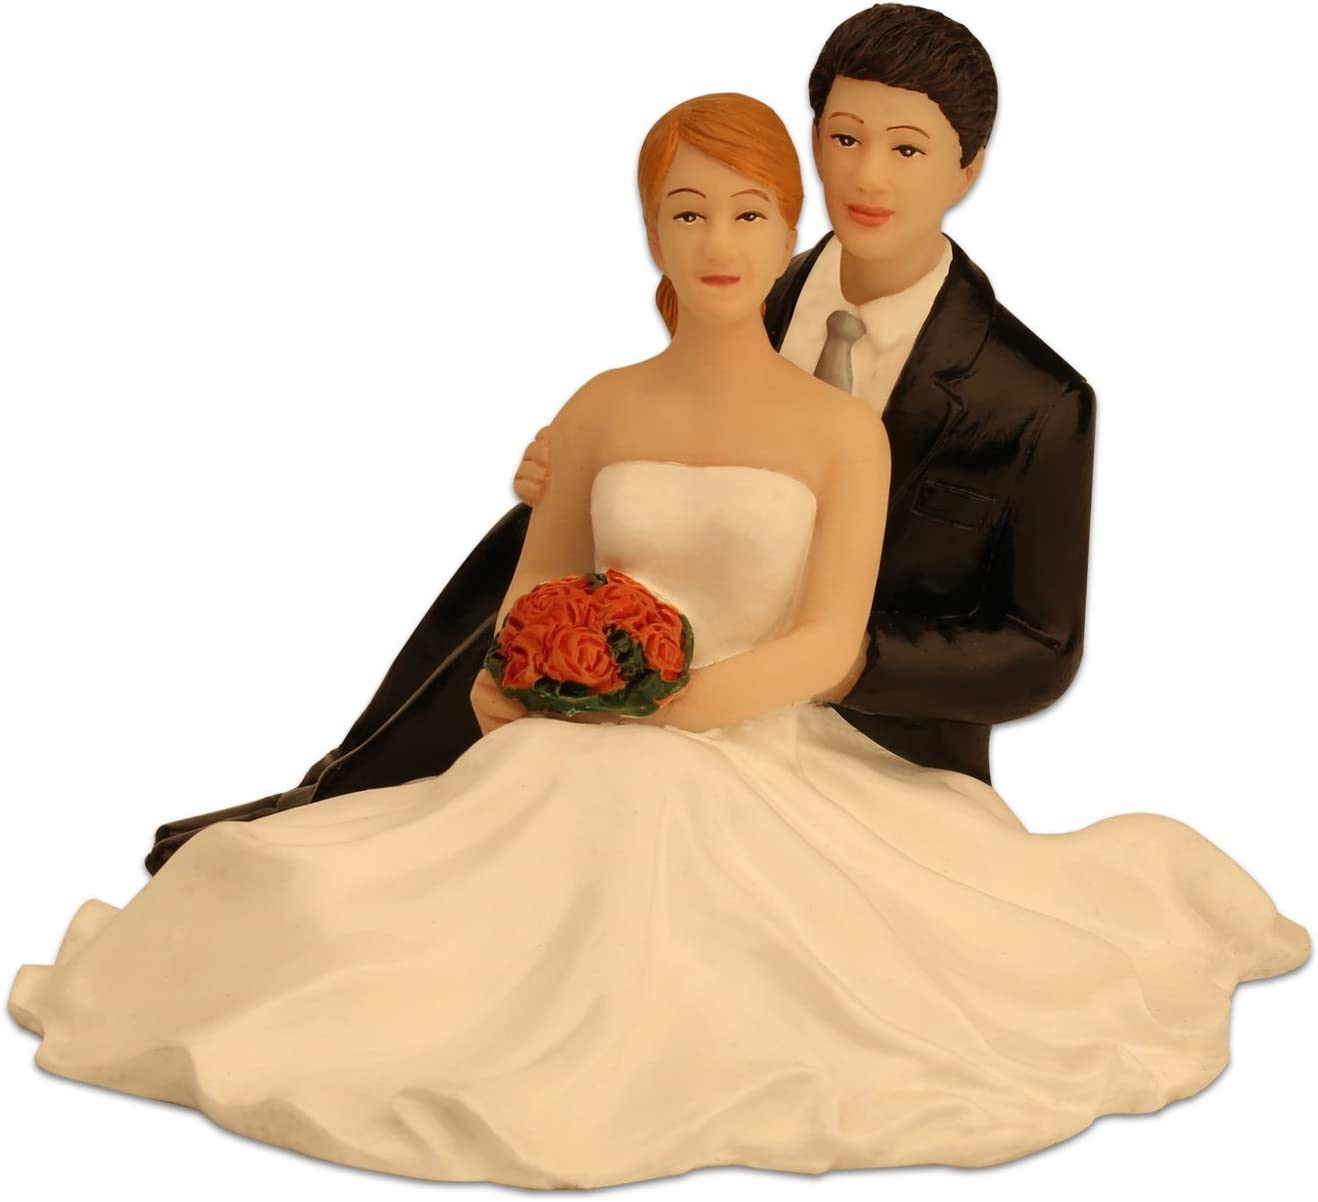 Ming People Weddling Couple Figurine Sitting Bride And Groom Cake Toppers Amazon Ca Home Kitchen